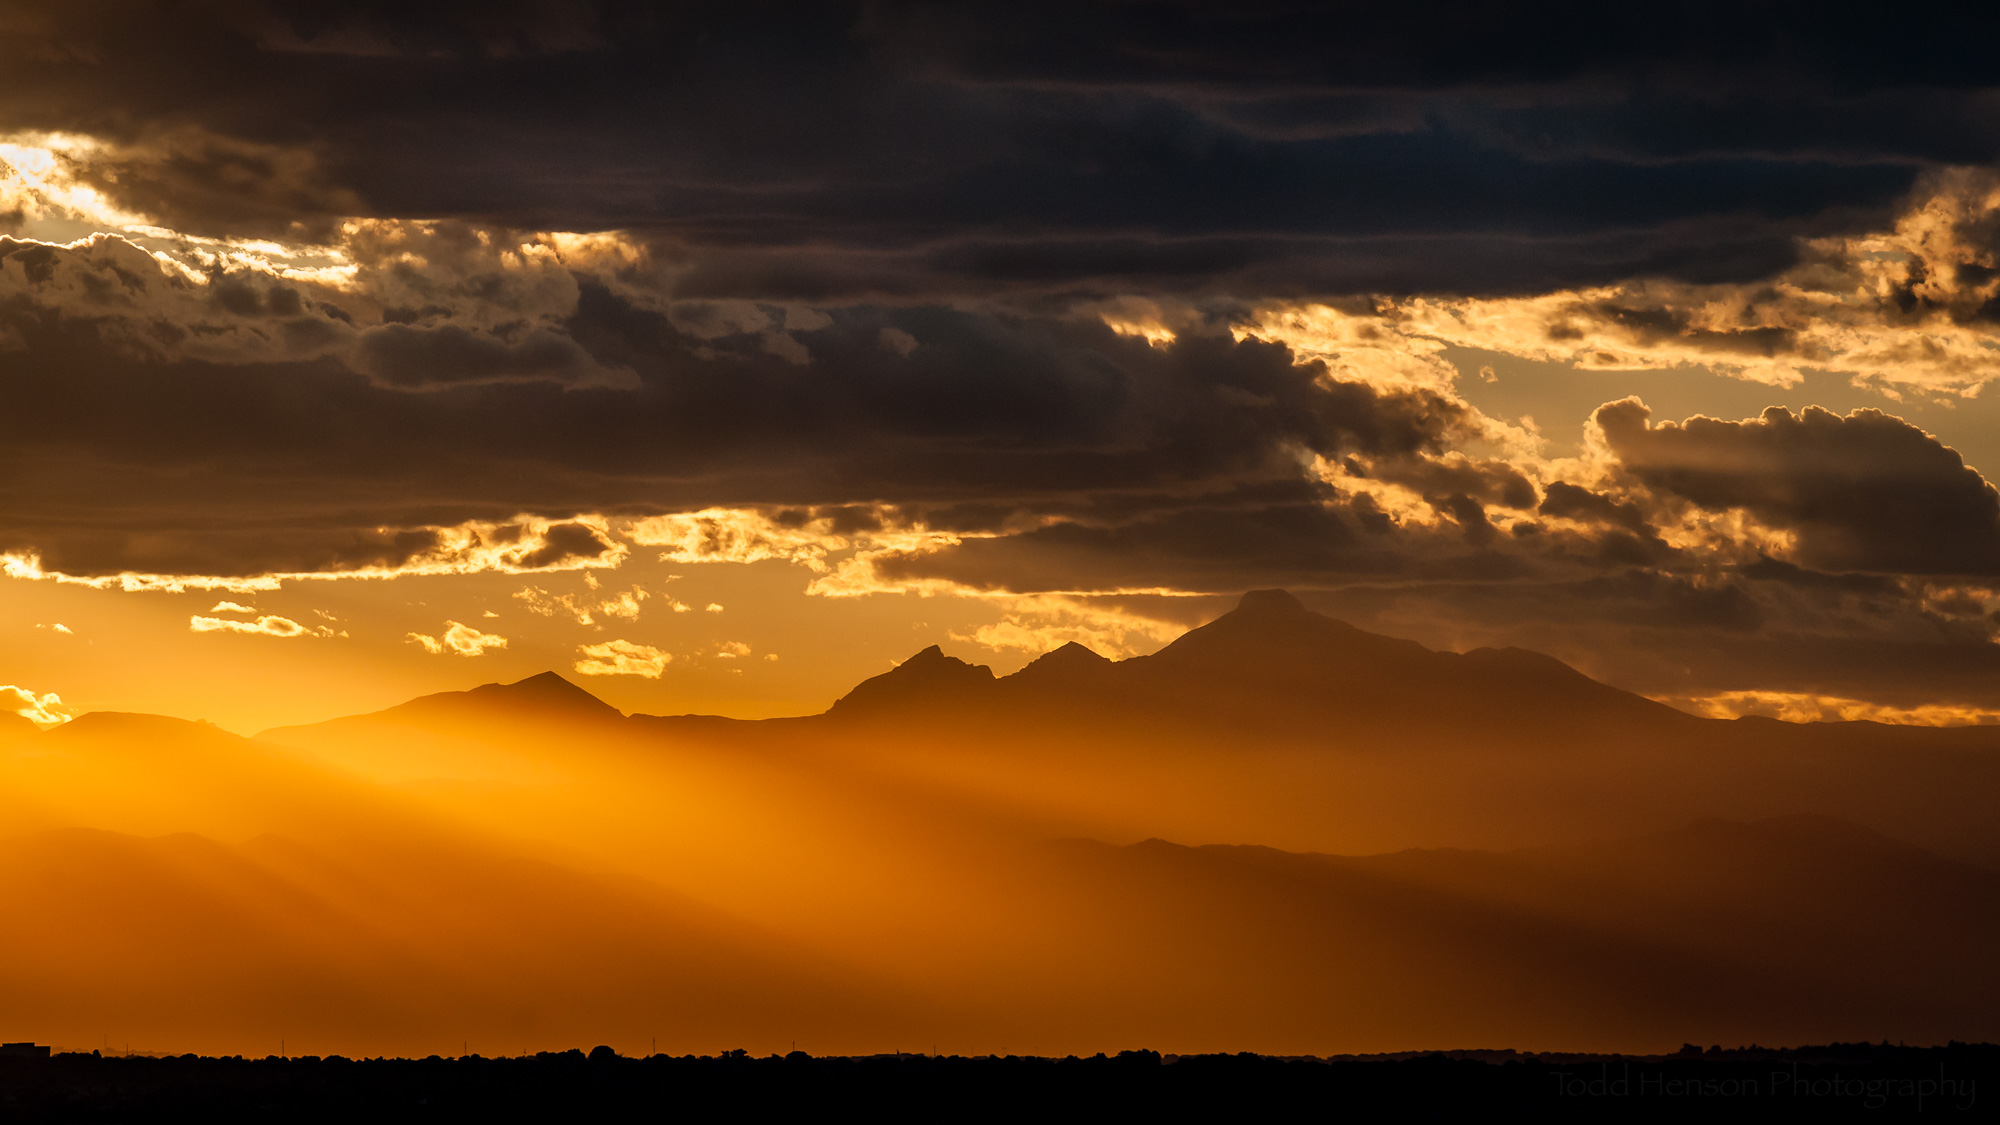 Rocky Mountain Sunset . The setting sun turns the Rocky Mountains into dark silhouettes engulfed in a soft orange glow.